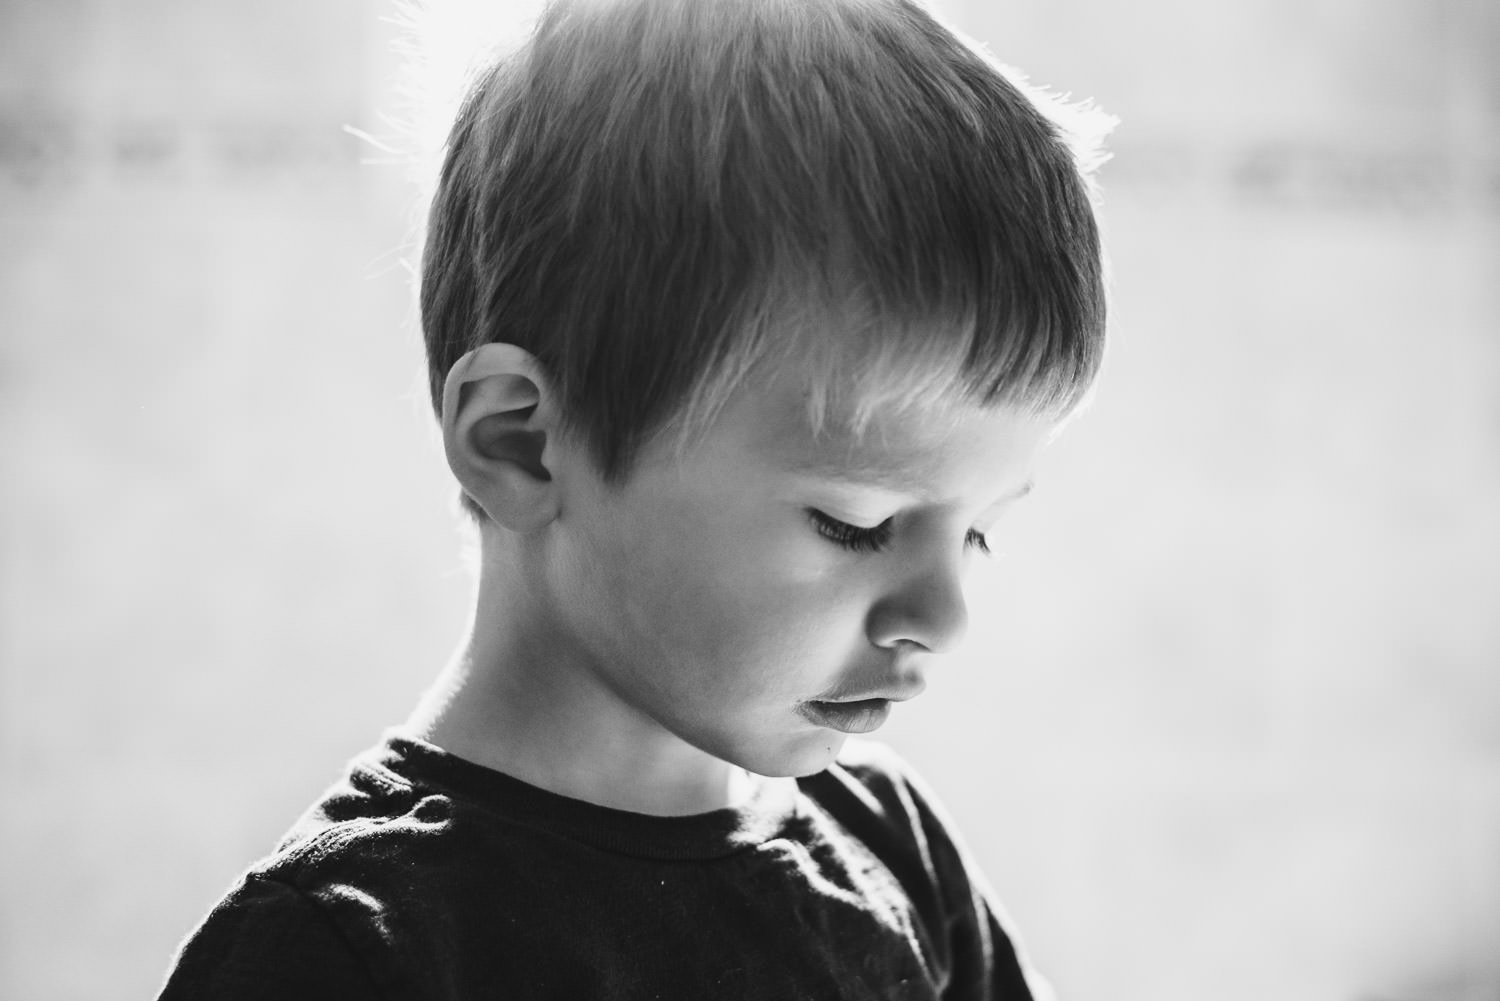 A portrait of a little boy in black and white.